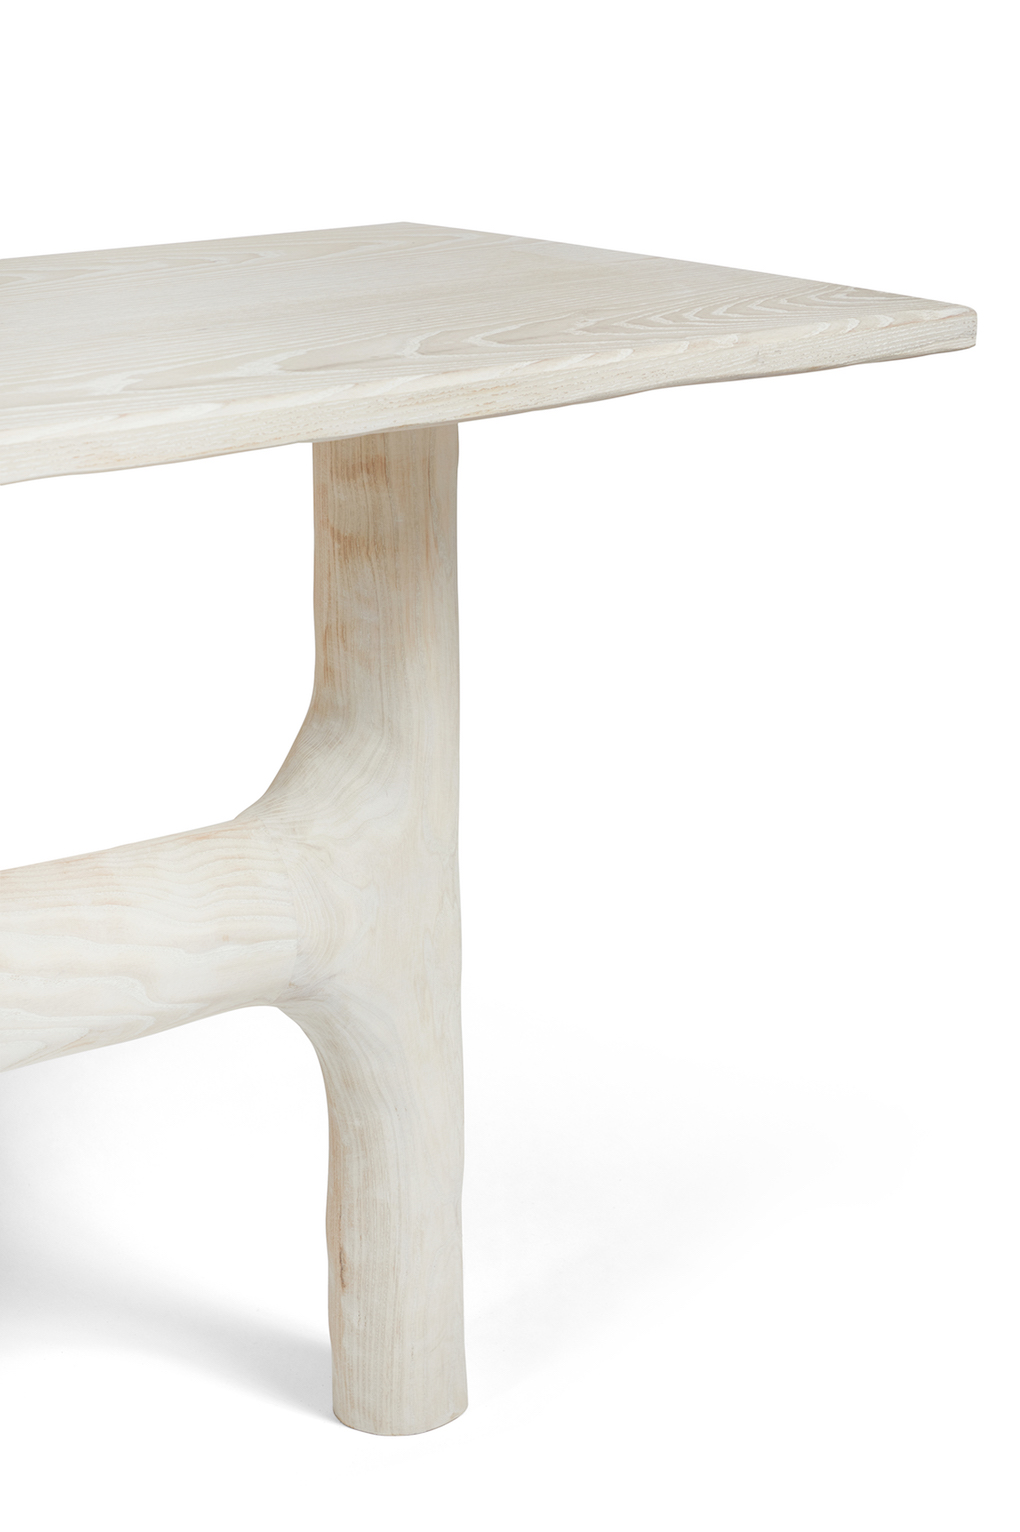 SCULPTURE 004 CONSOLE TABLE (27).jpg